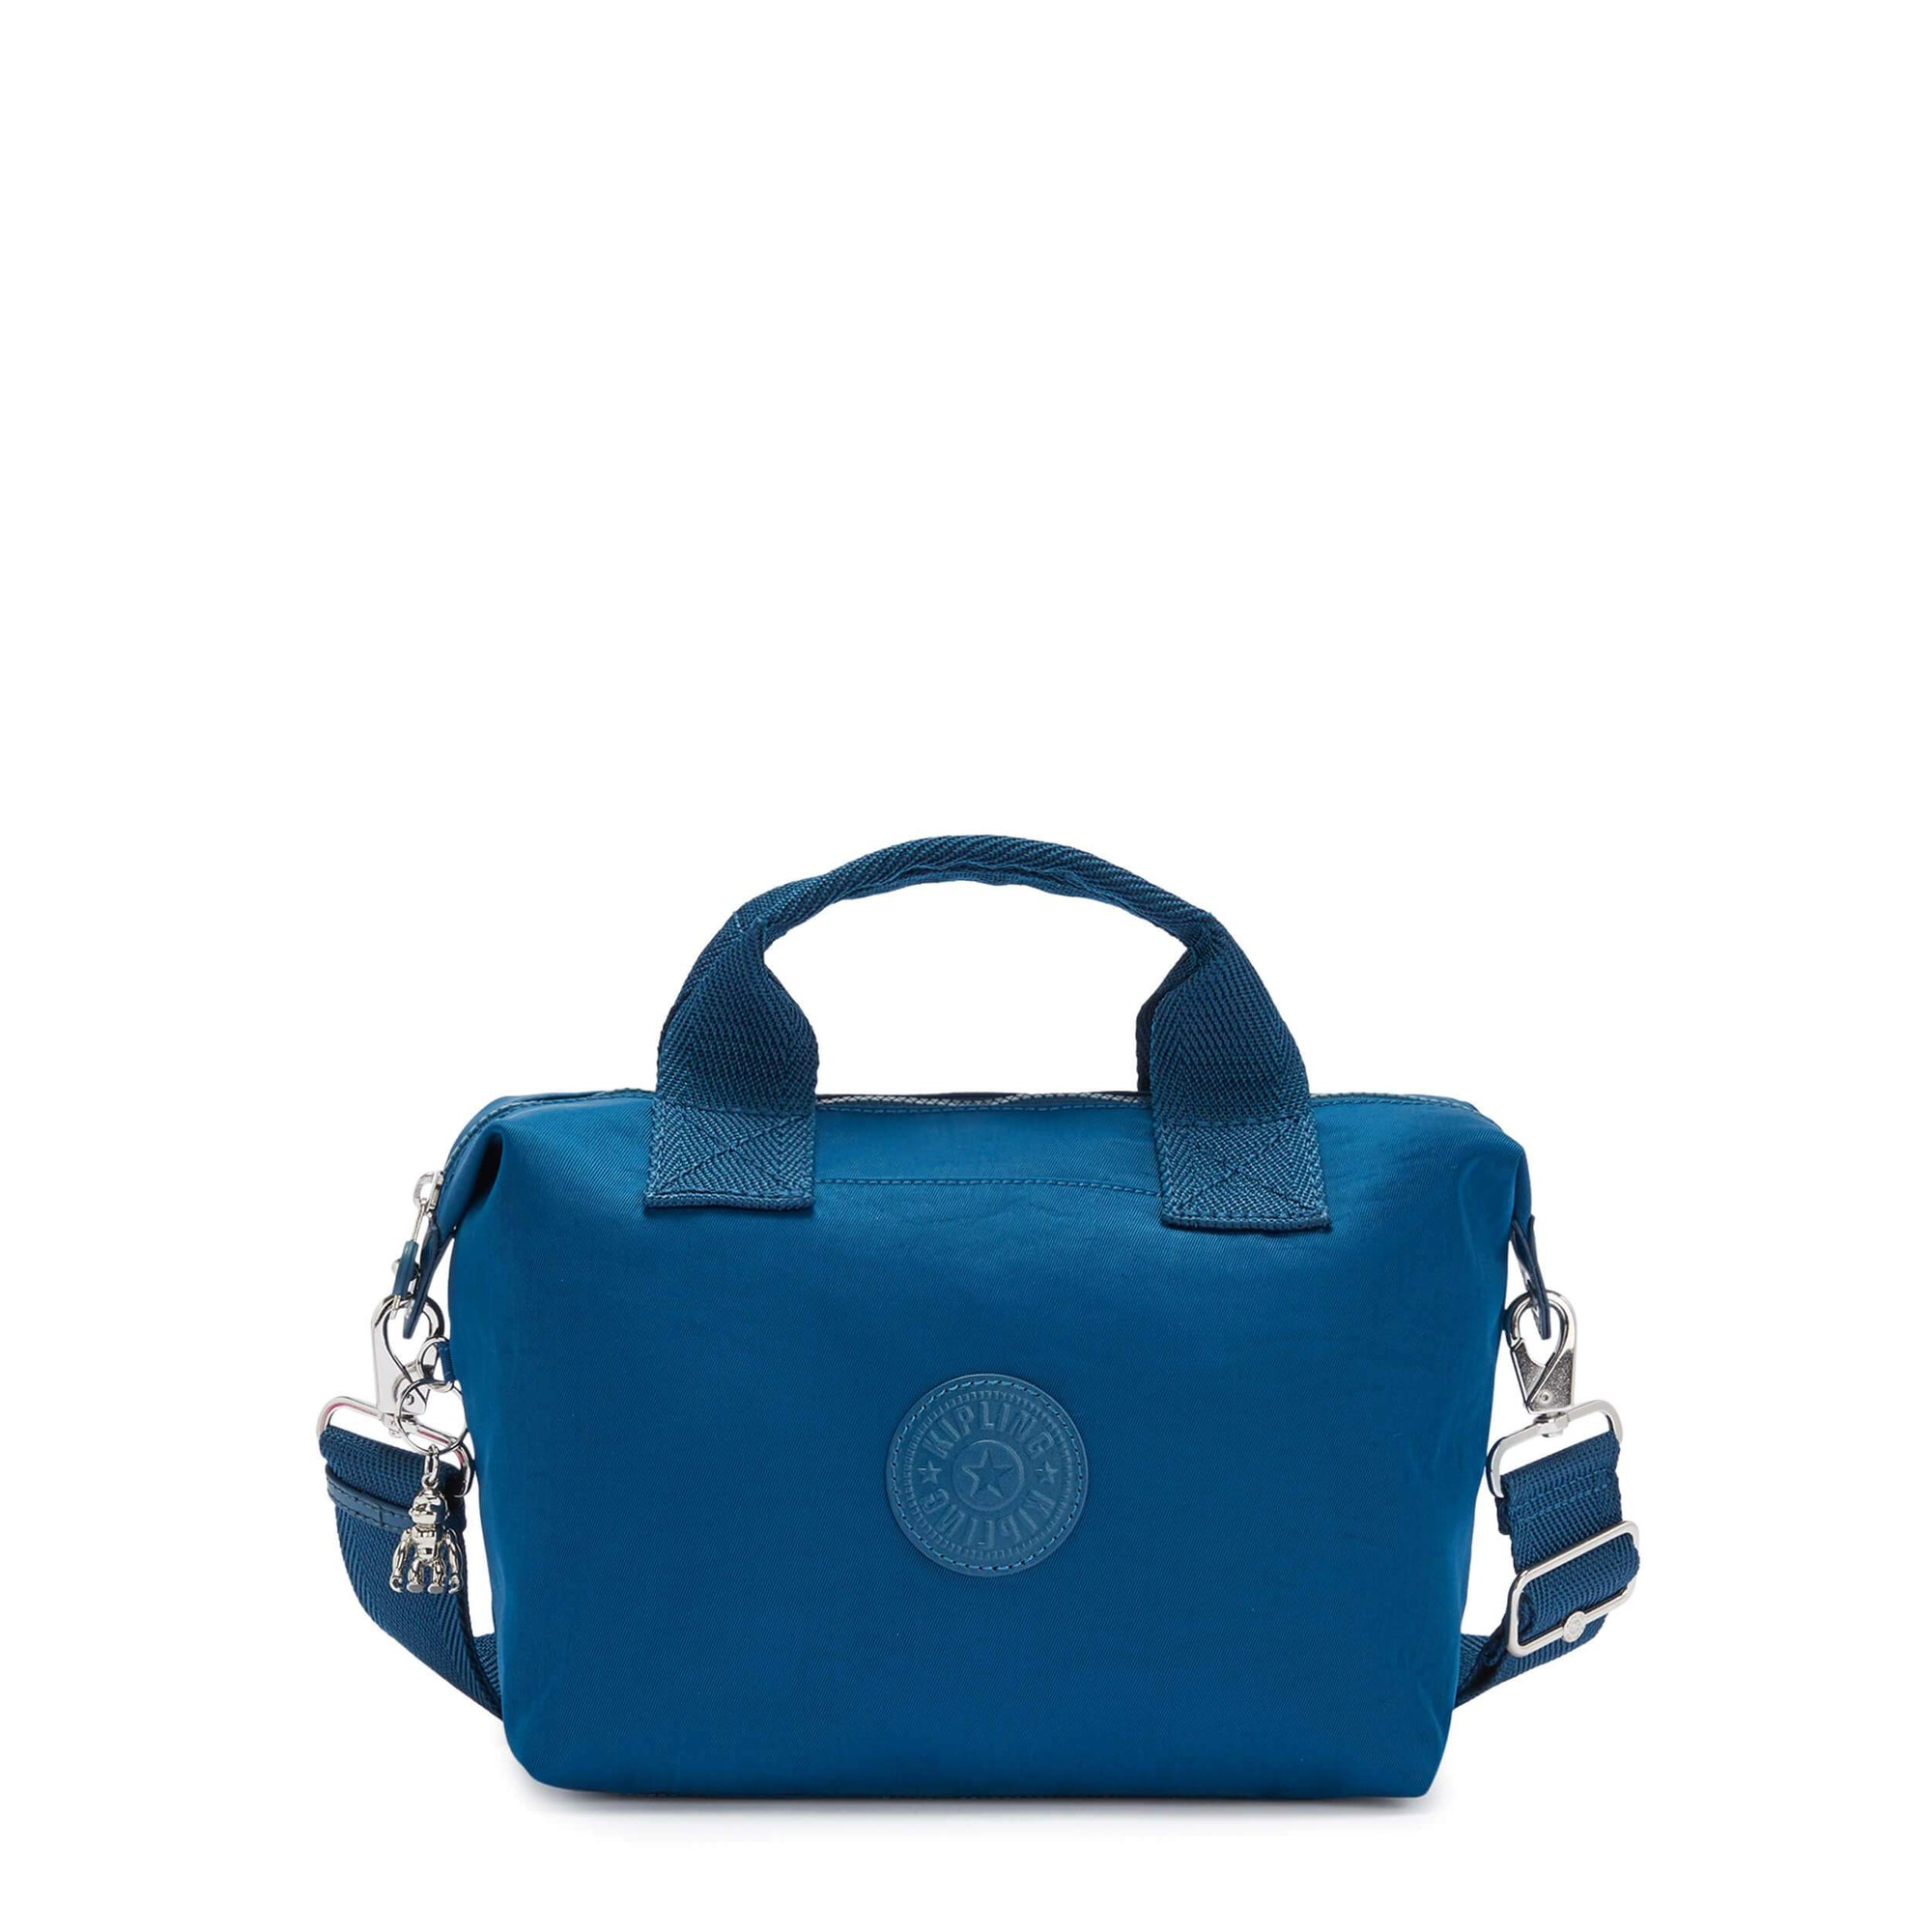 Bolsa Kipling Kala Mini Warm Teal KI7496J78